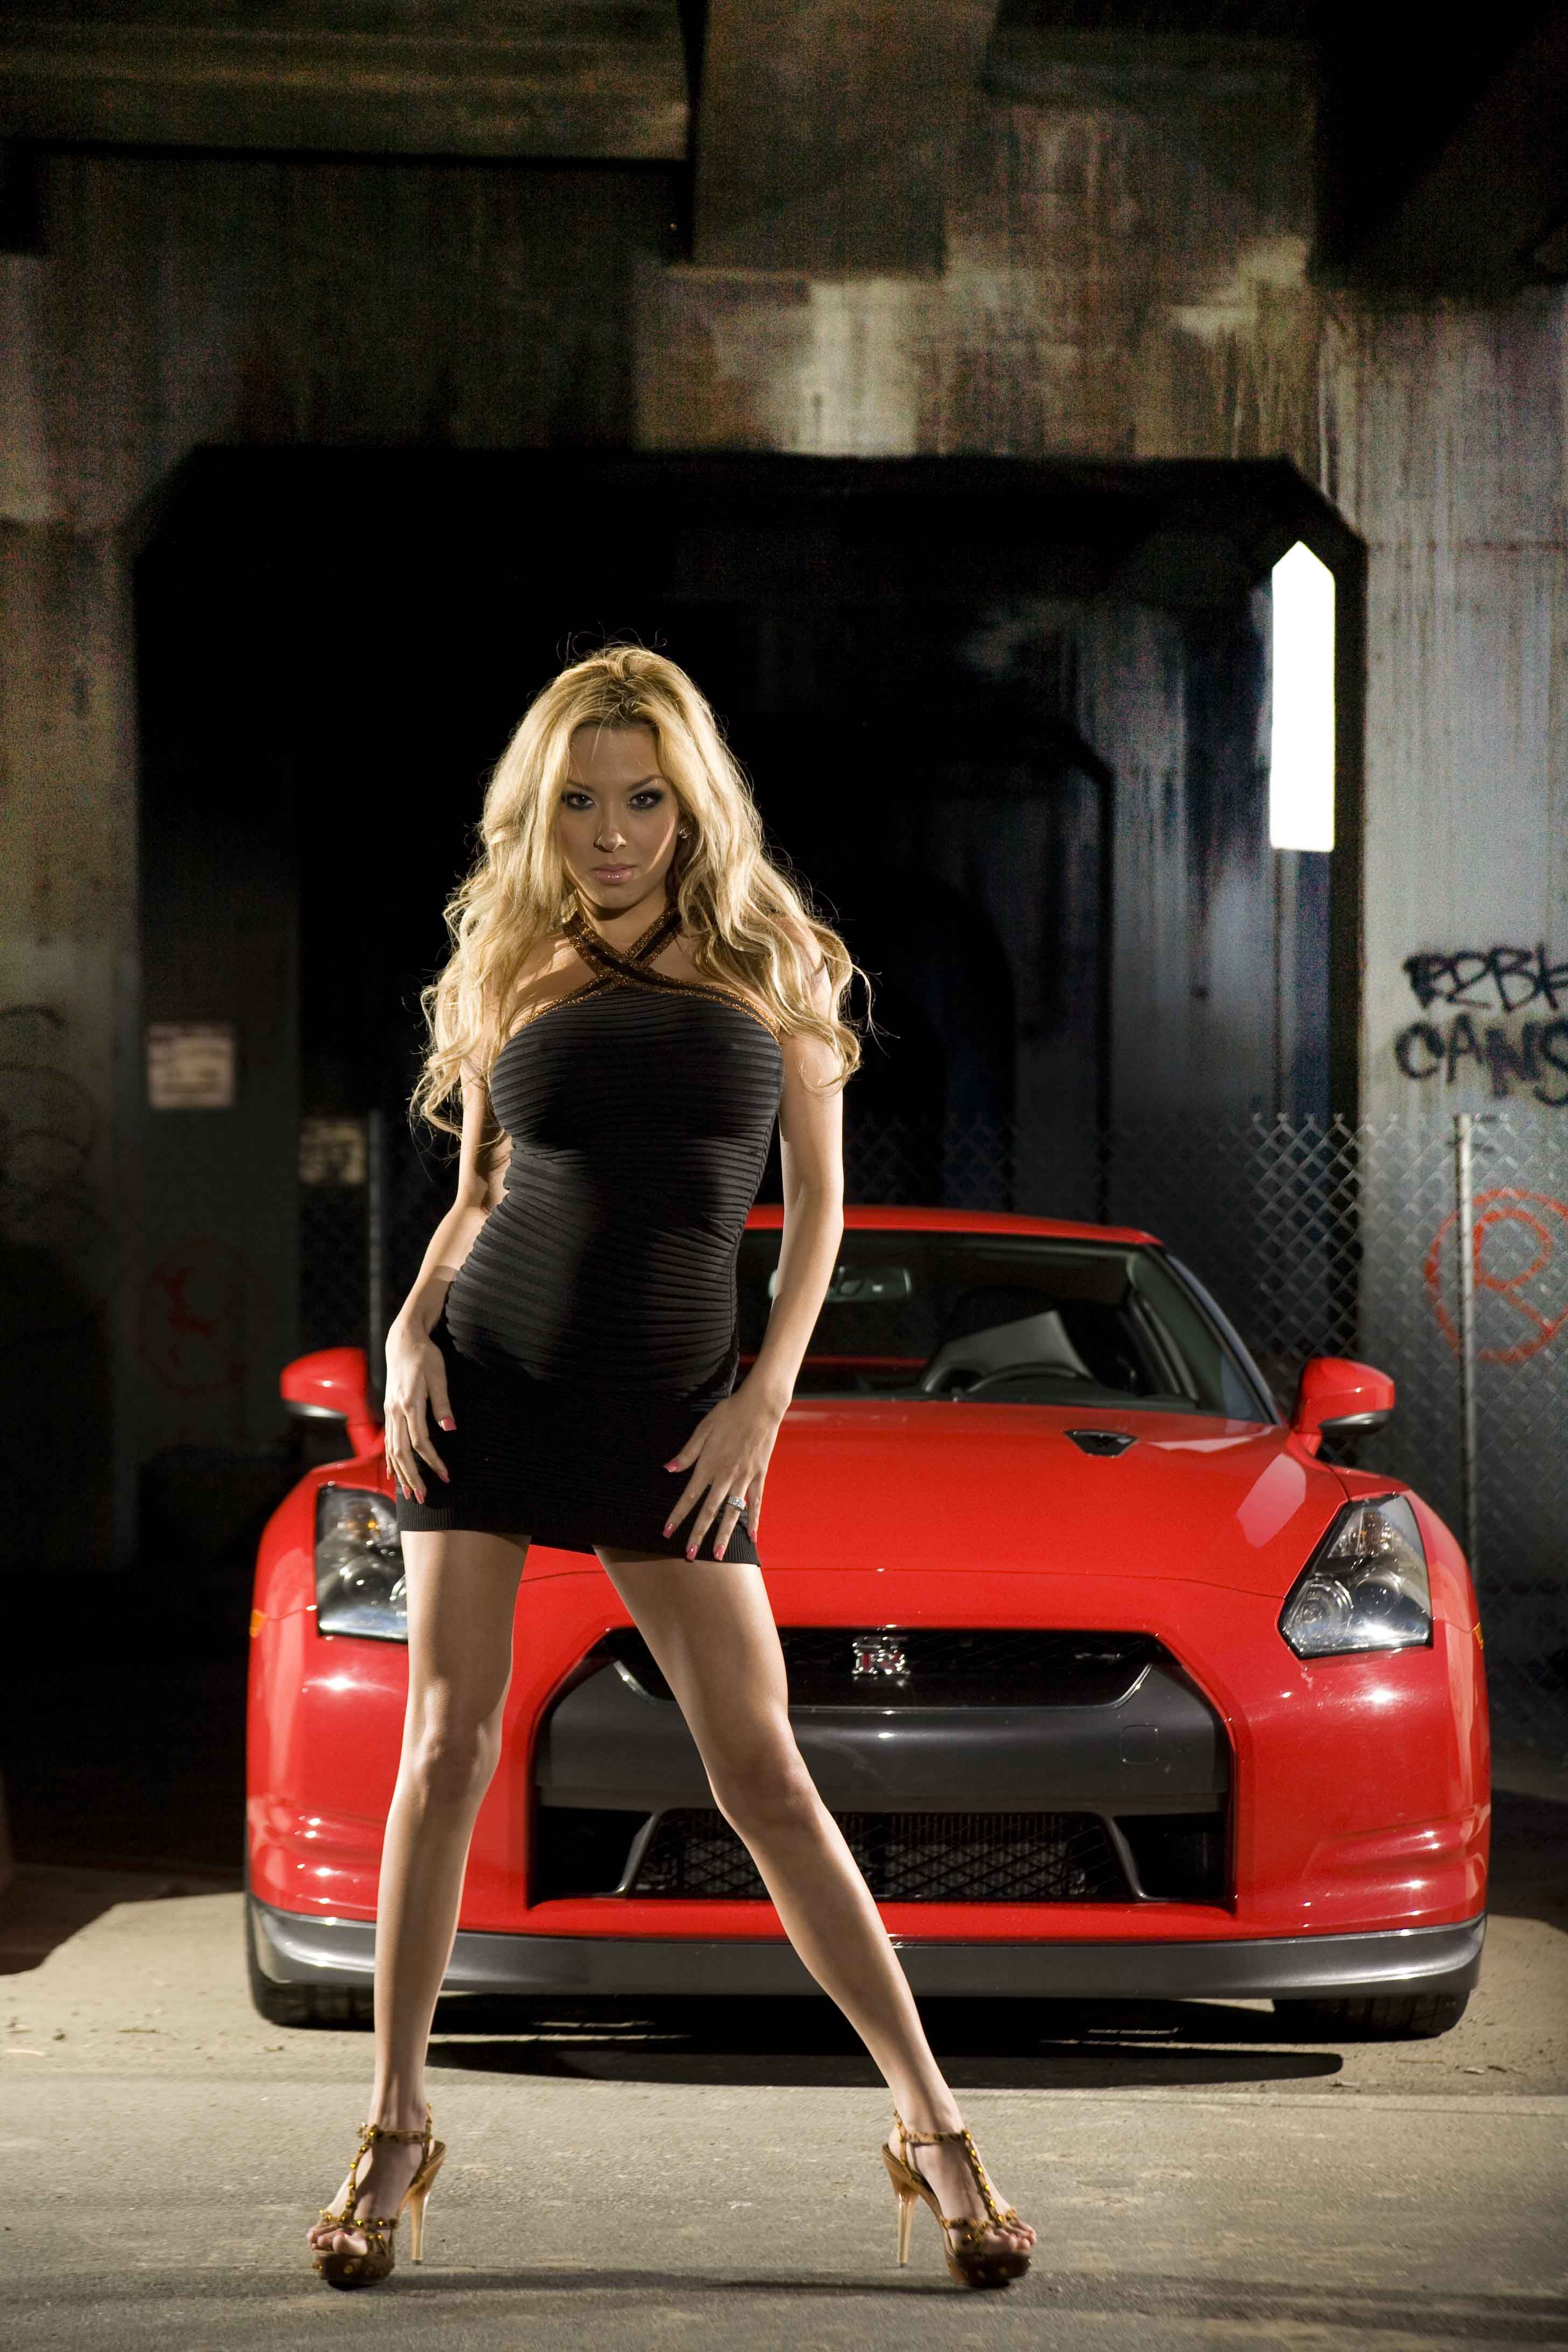 Importtunercovermodelsearchjpg AutoMoto - Fast car magazine models